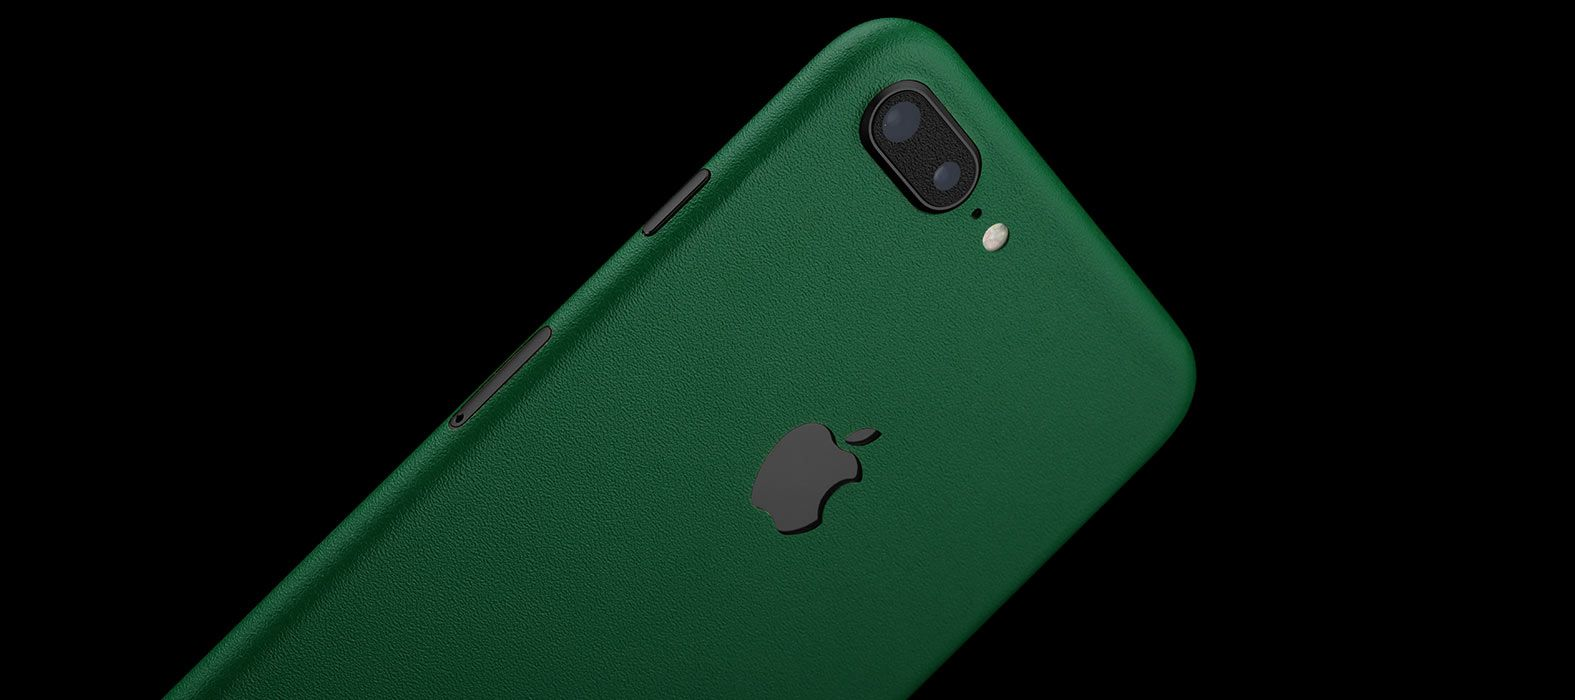 iPhone 8 Plus Sandstone Green Skins